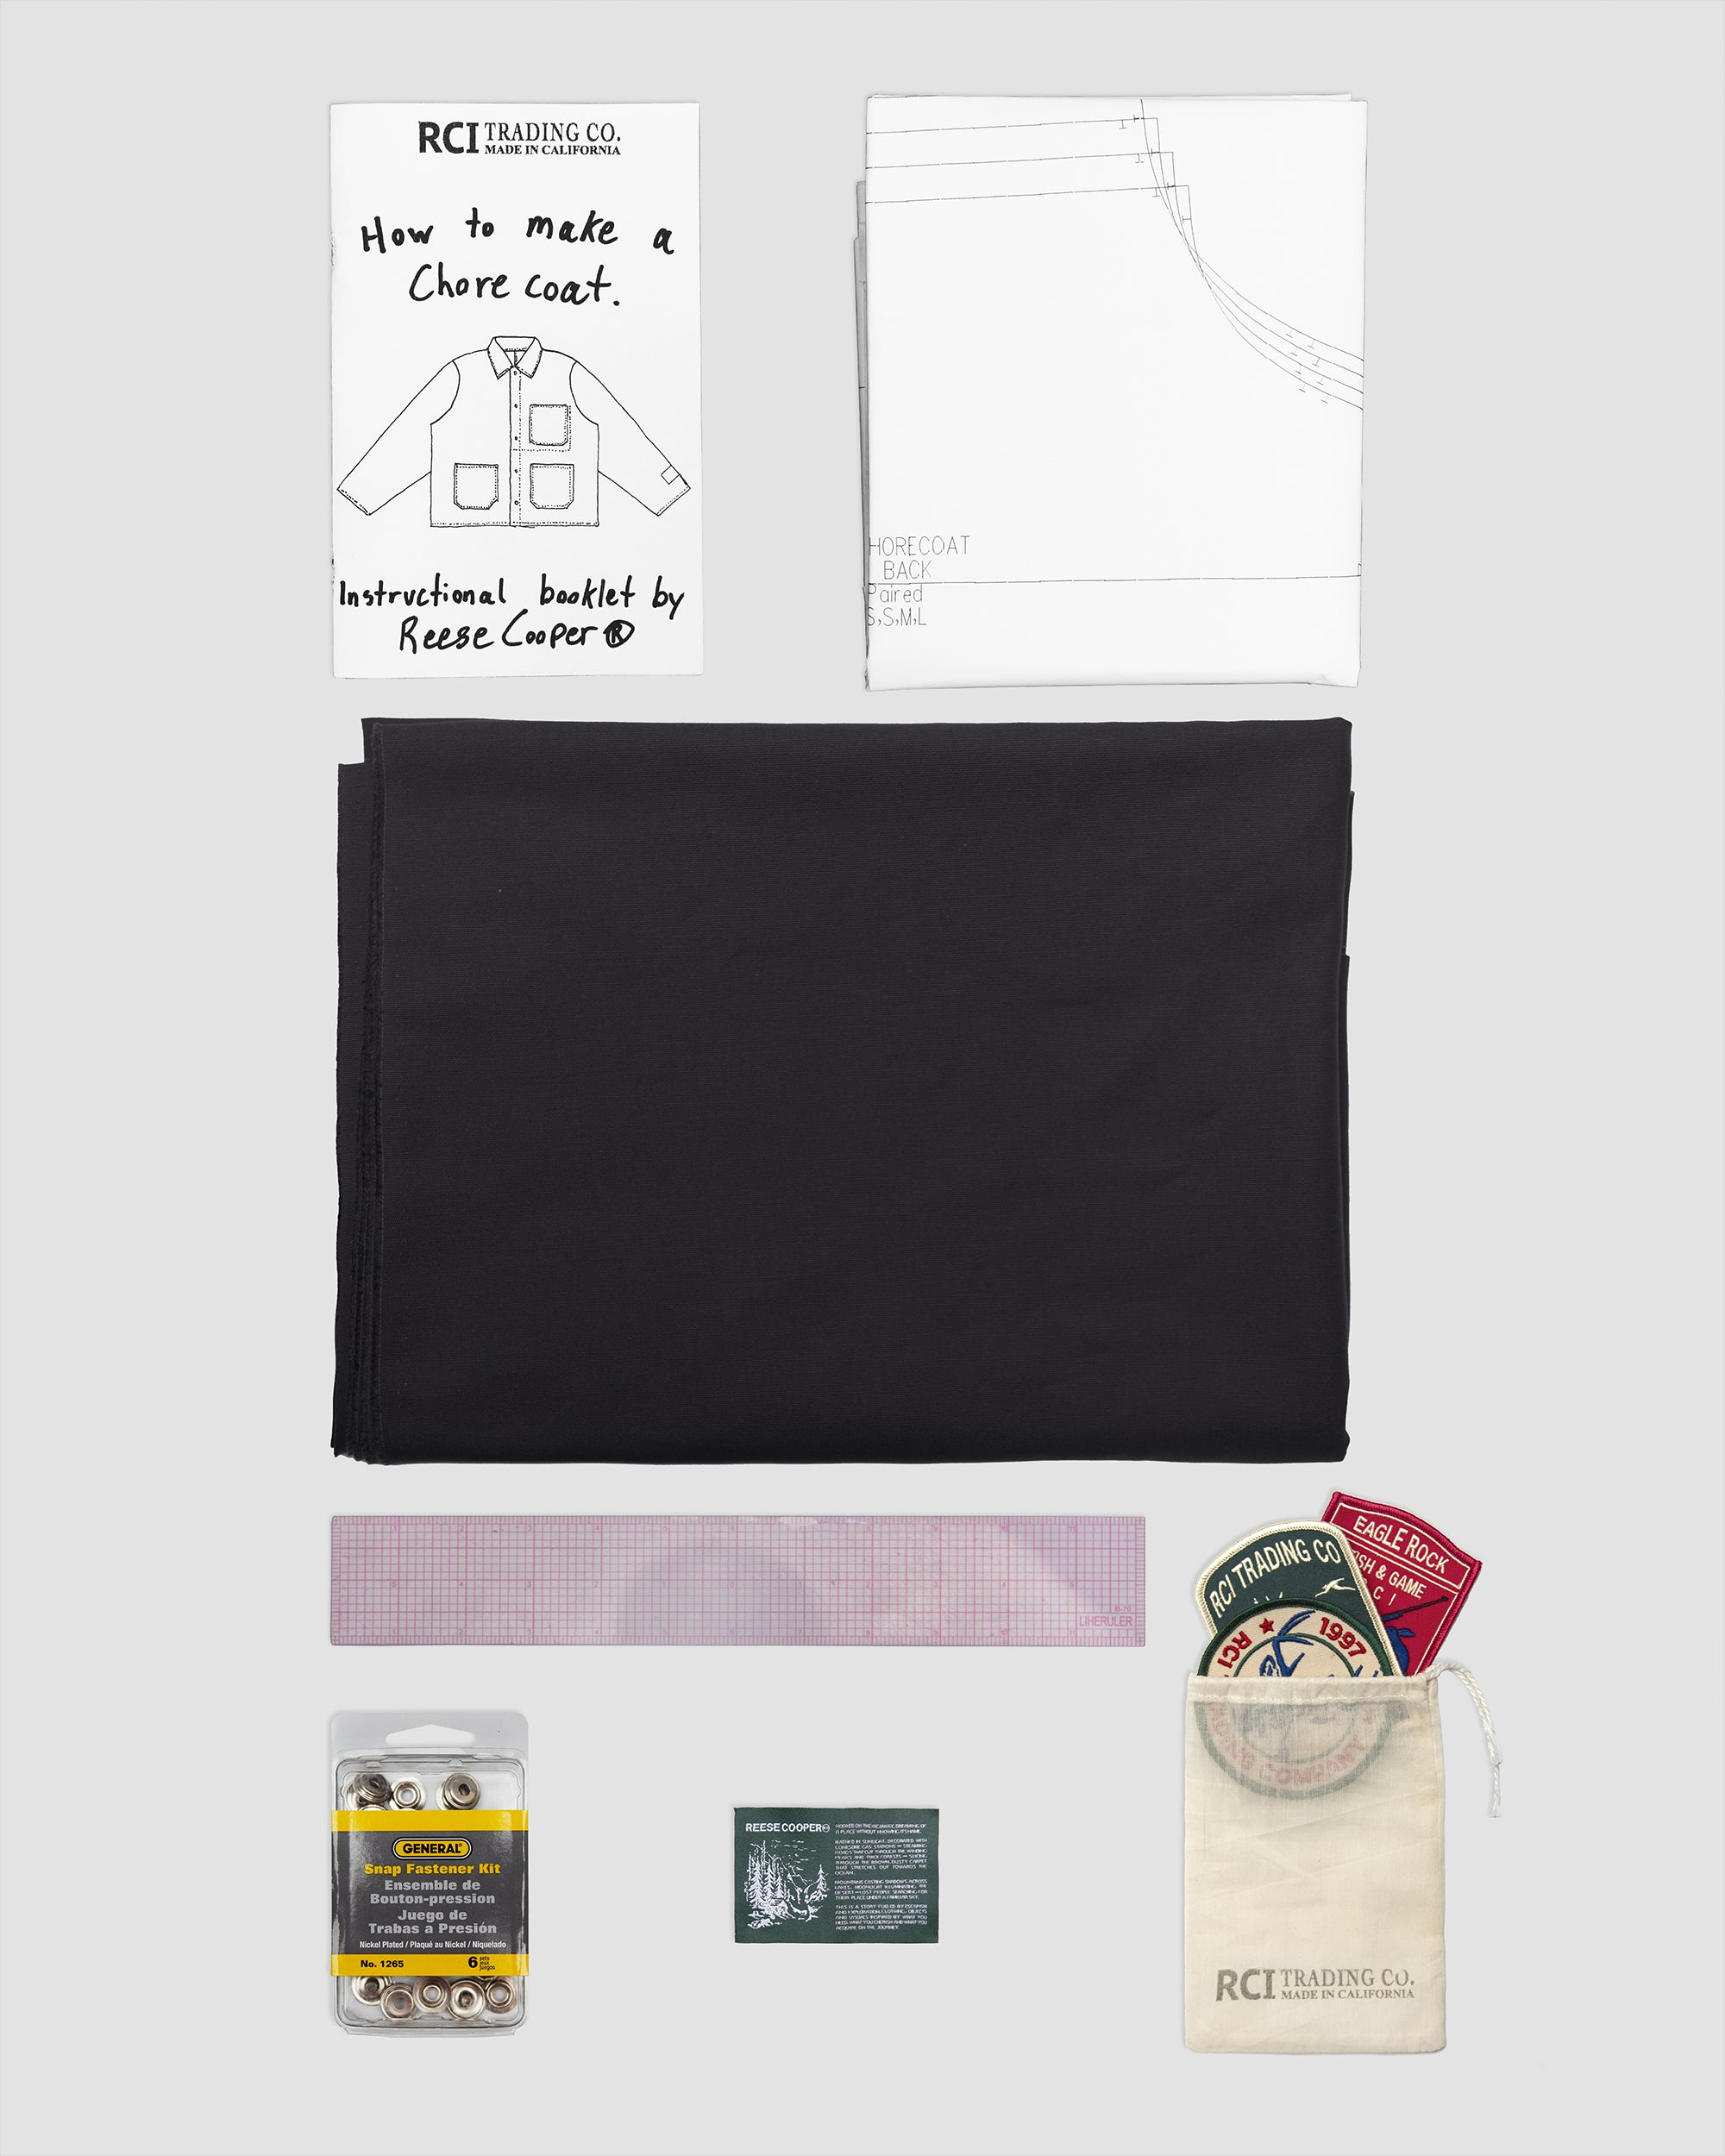 RCI Chore Coat Kit with Black Brushed Cotton Twill